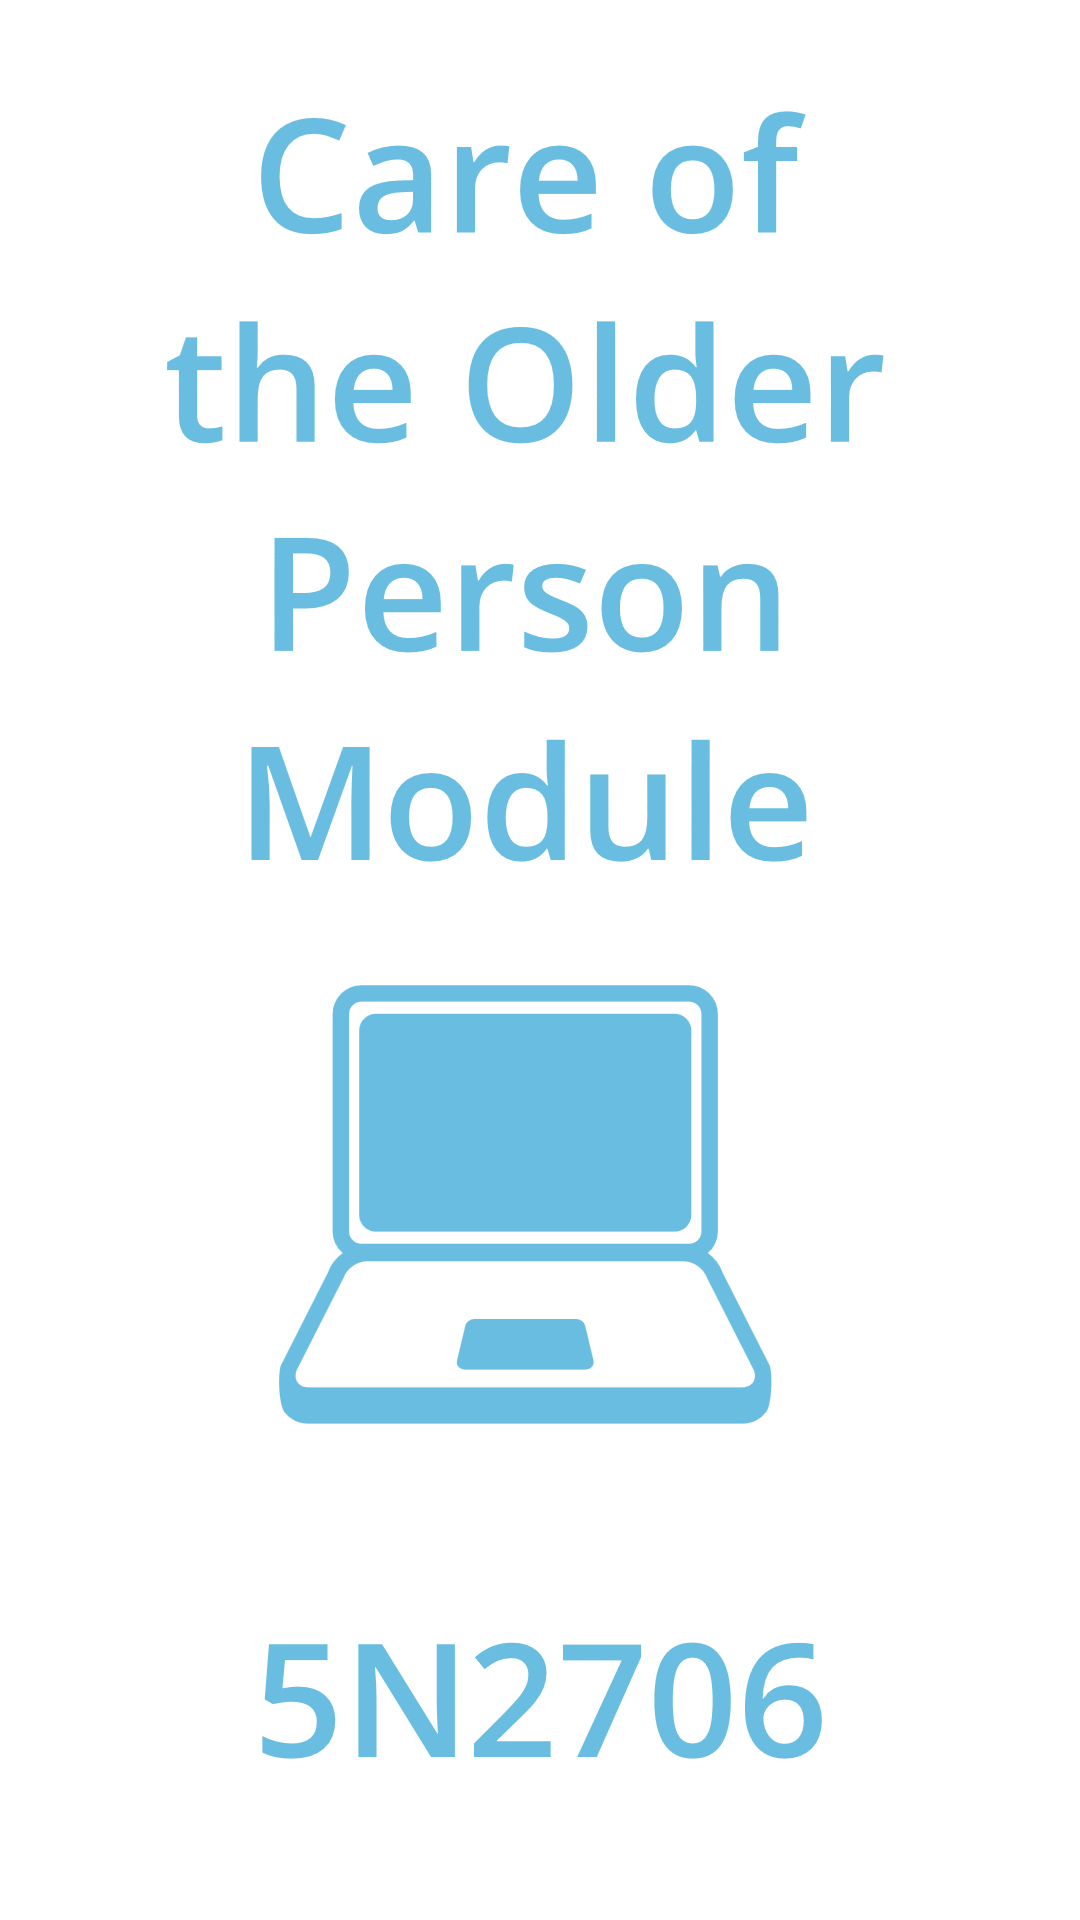 care of the older person module